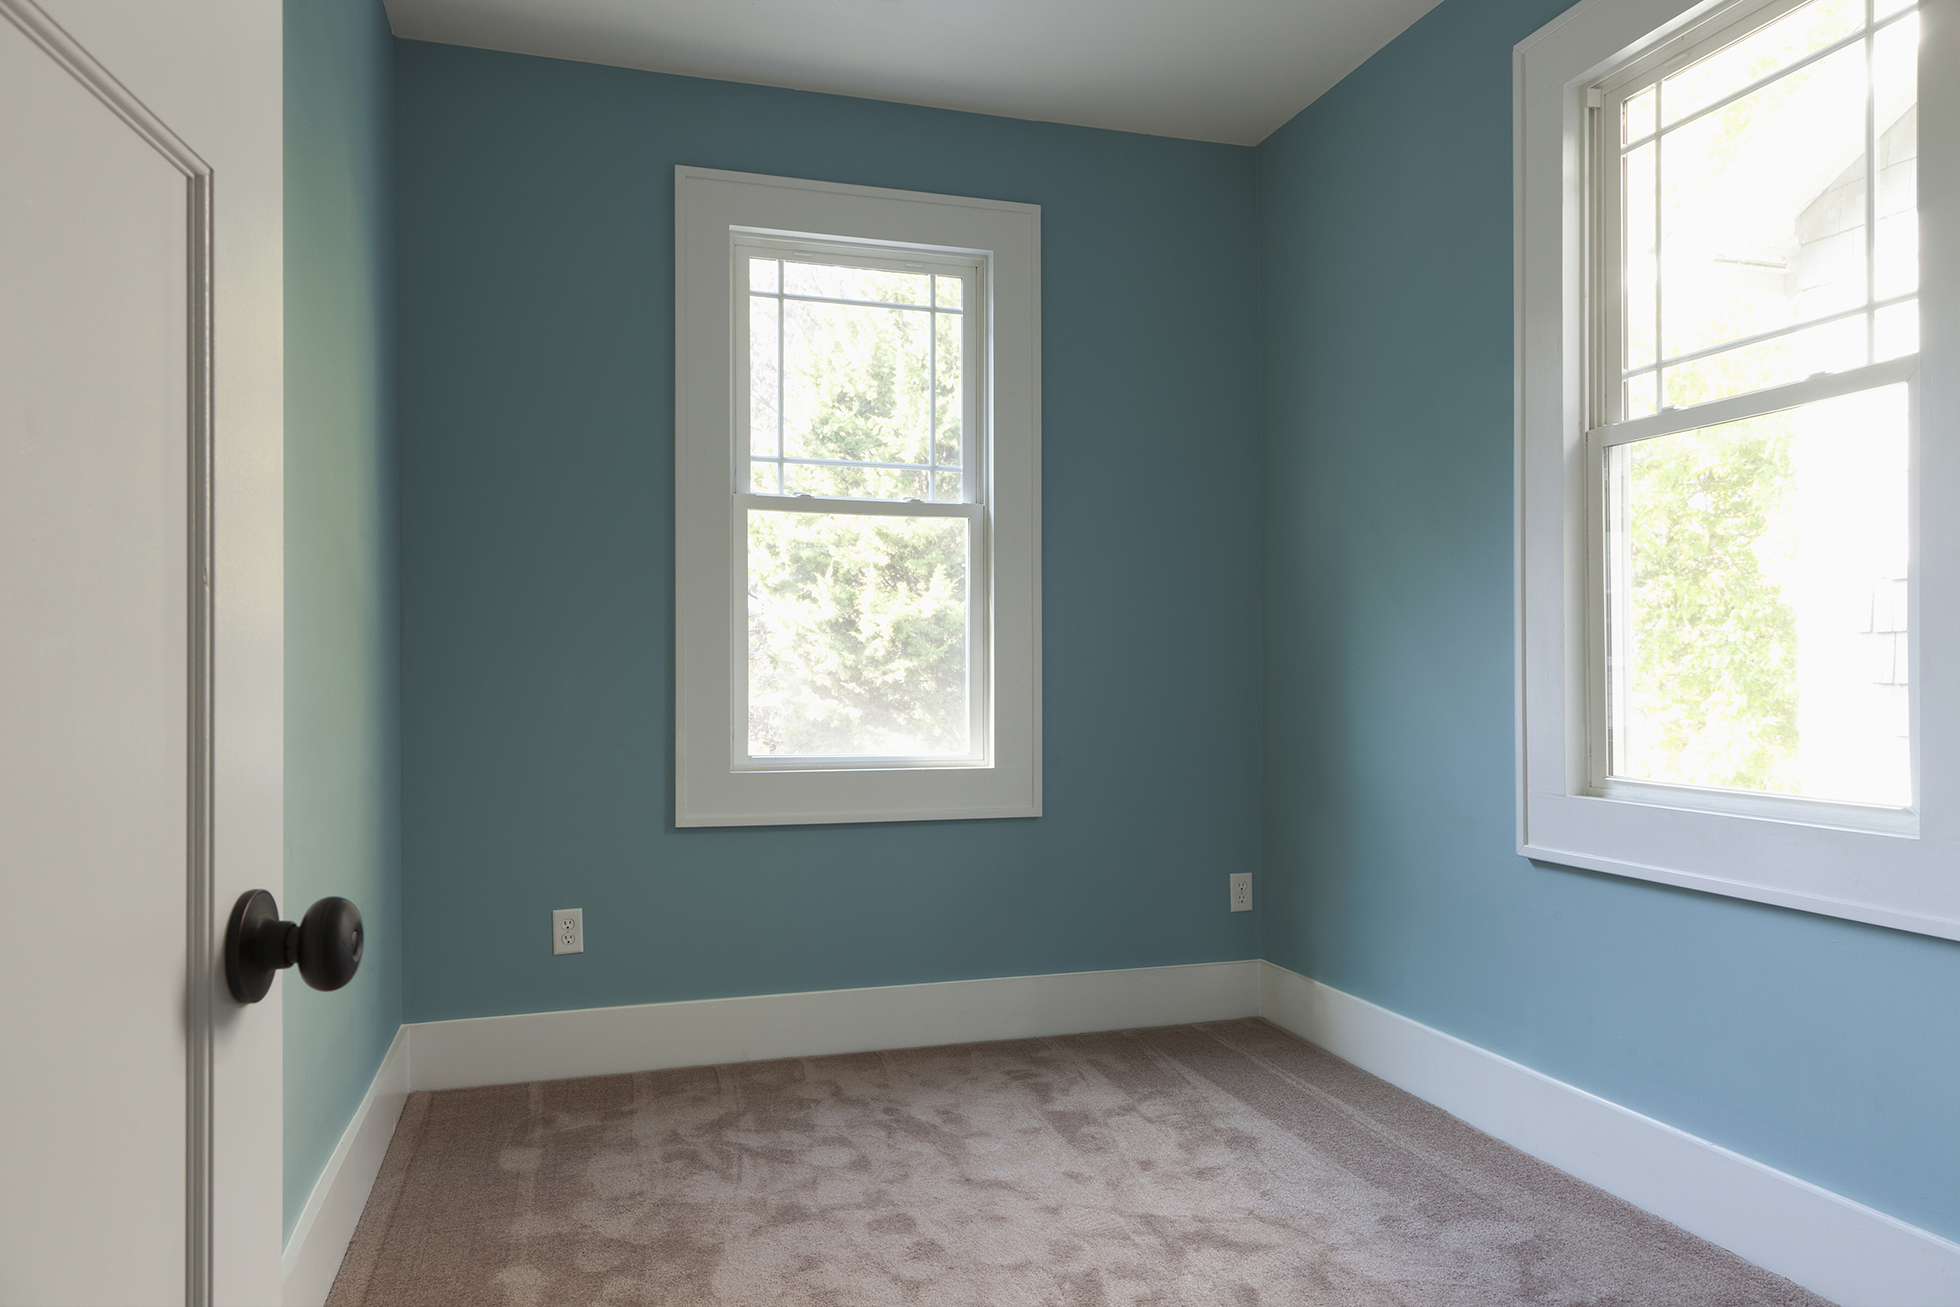 White door opening to empty blue room with beige carpet